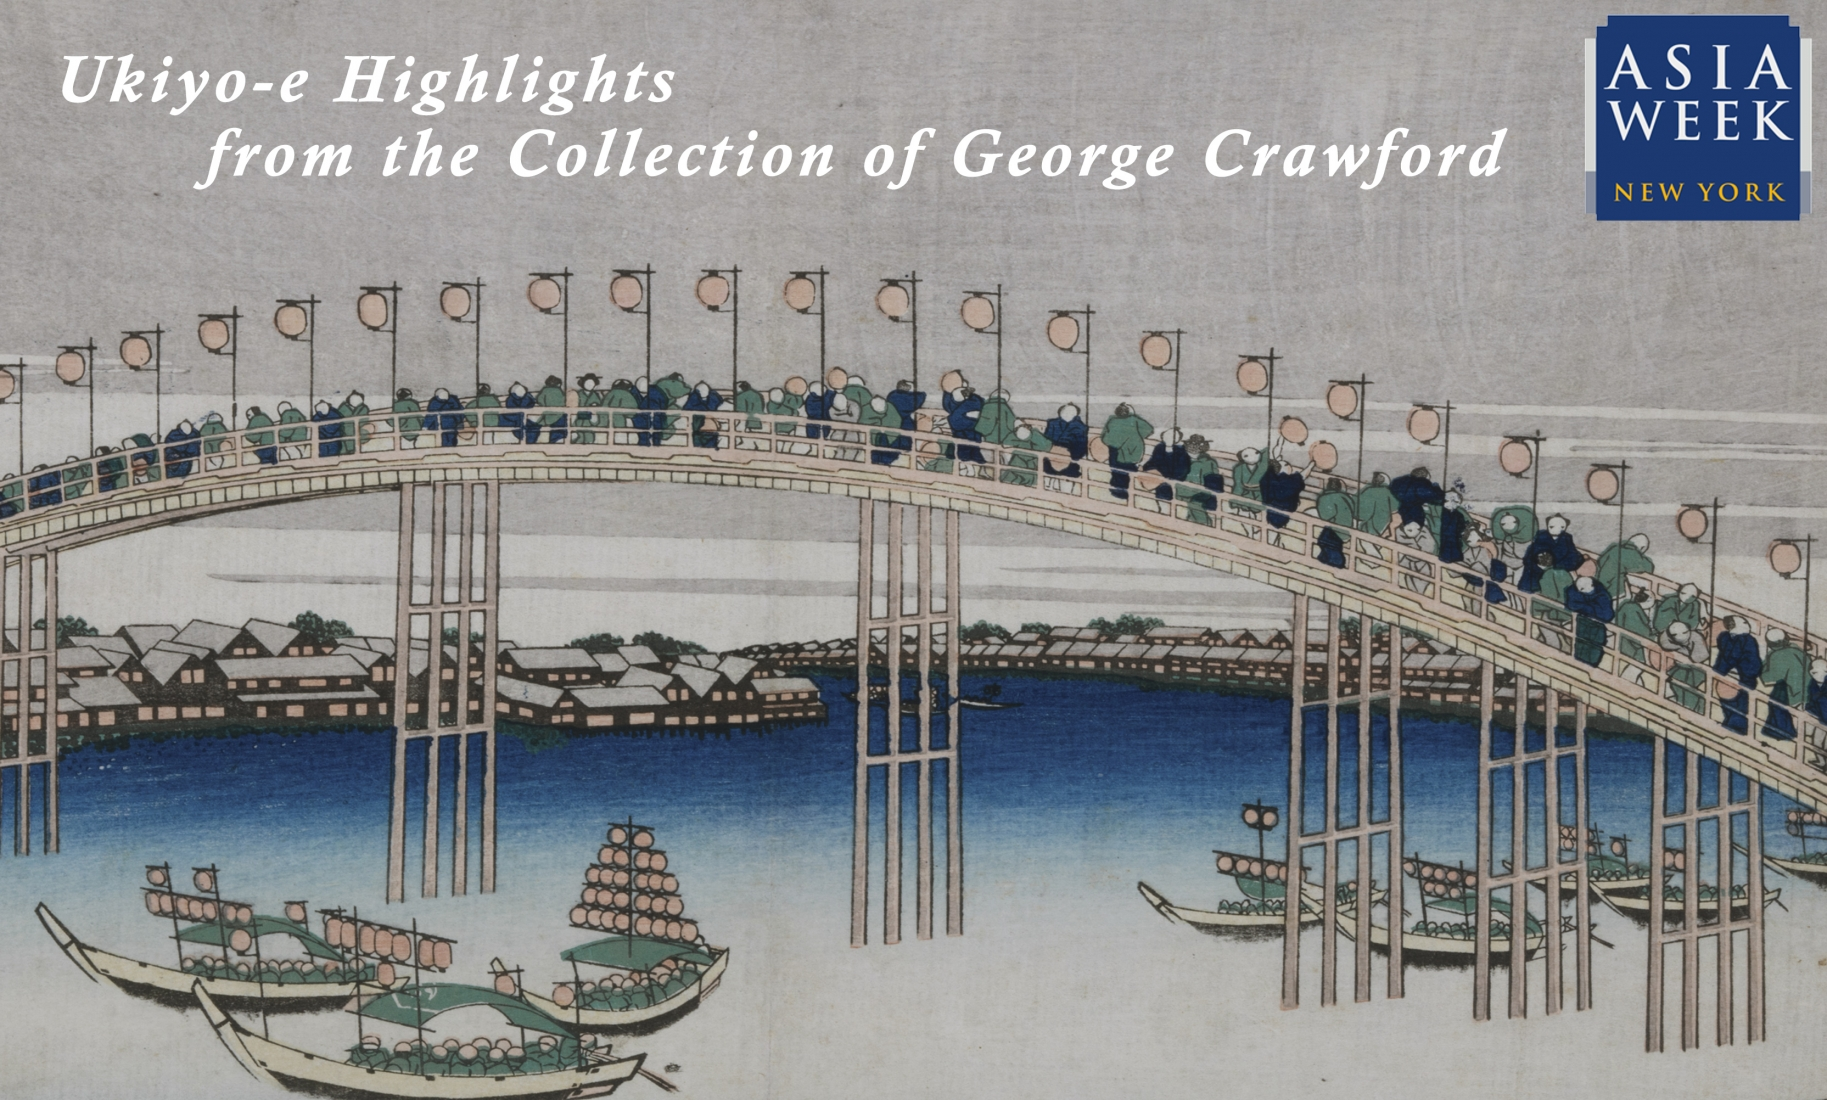 ASIA WEEK 2020 | Ukiyo-e Highlights from the Collection of George Crawford